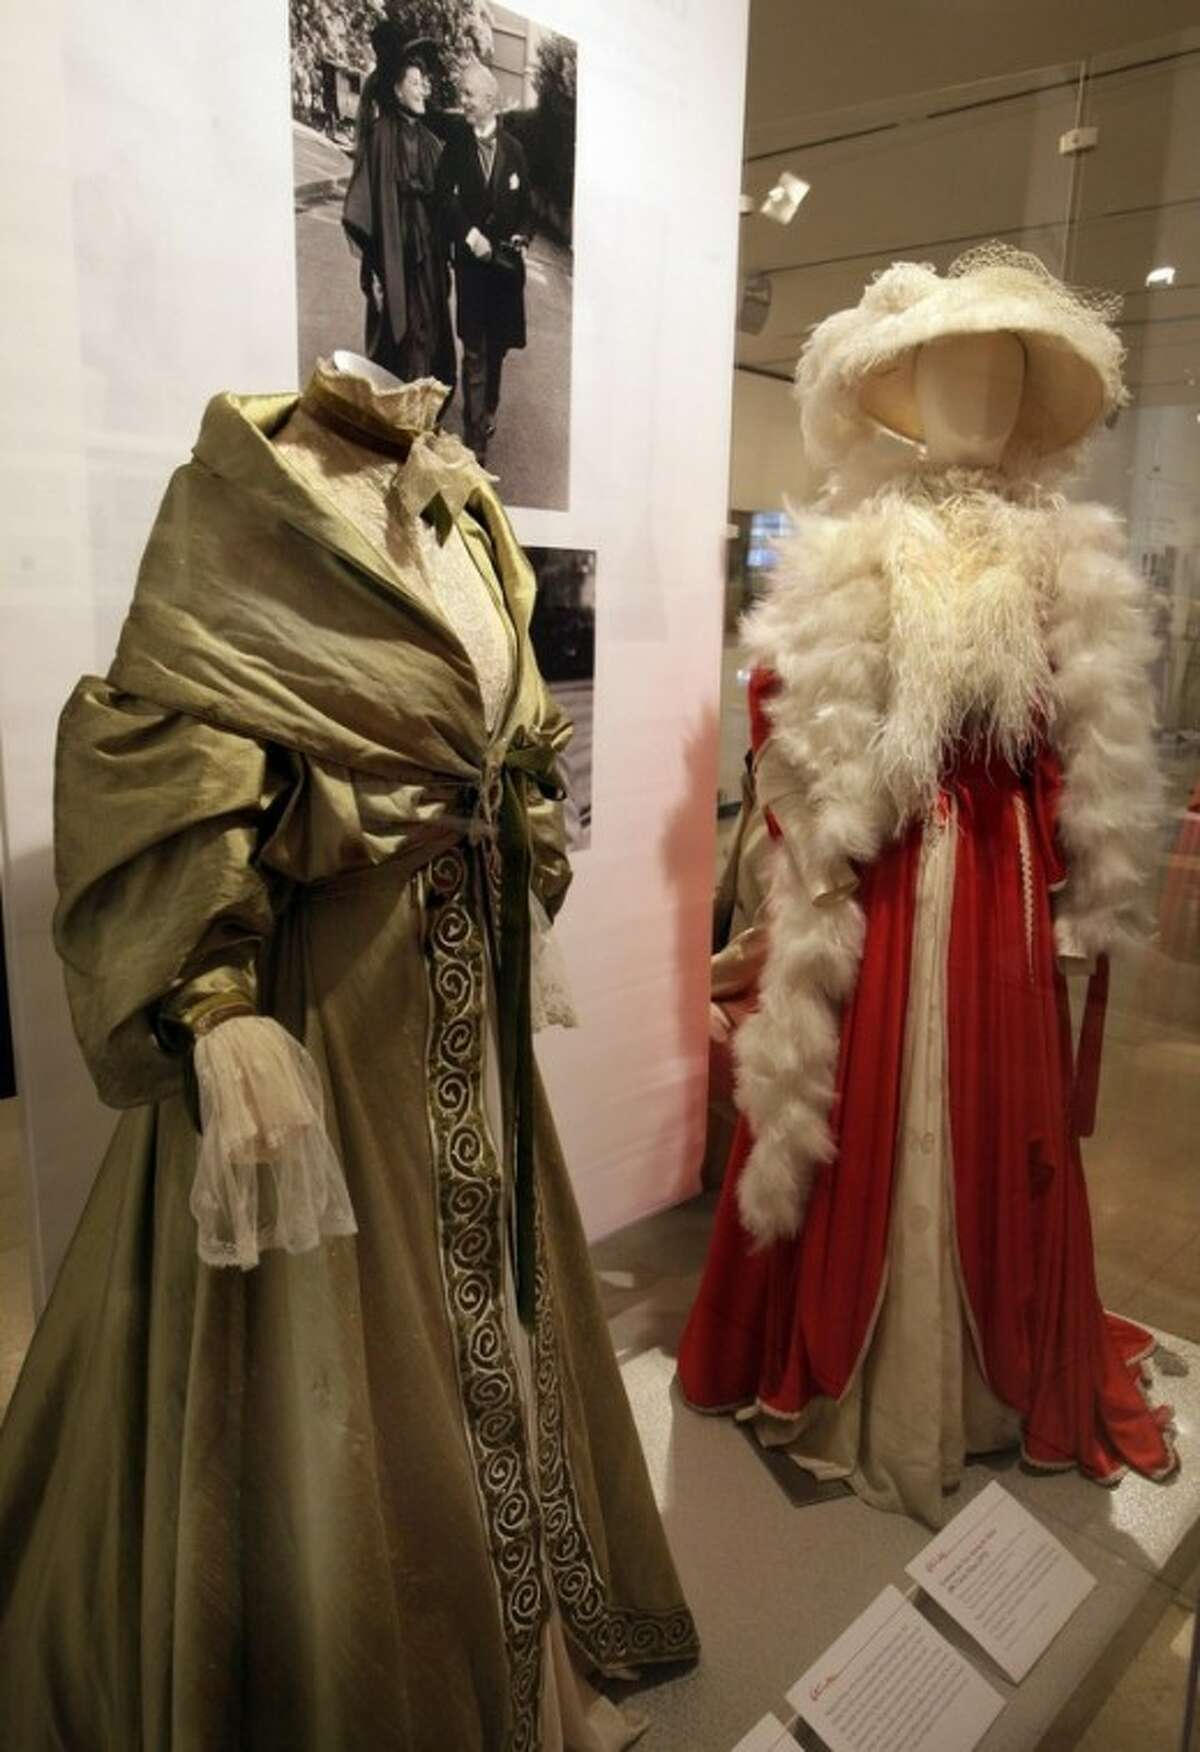 """Two designs by Margaret Furse and Germinal Rangel, from the 1975 ABC Circle Films production of """"Love Among the Ruins,"""" are shown as part of the """"Katharine Hepburn: Dressed for Stage and Screen"""" exhibit in the New York Public Library for the Performing Arts at Lincoln Center, Tuesday, Oct. 16, 2012. (AP Photo/Richard Drew)"""